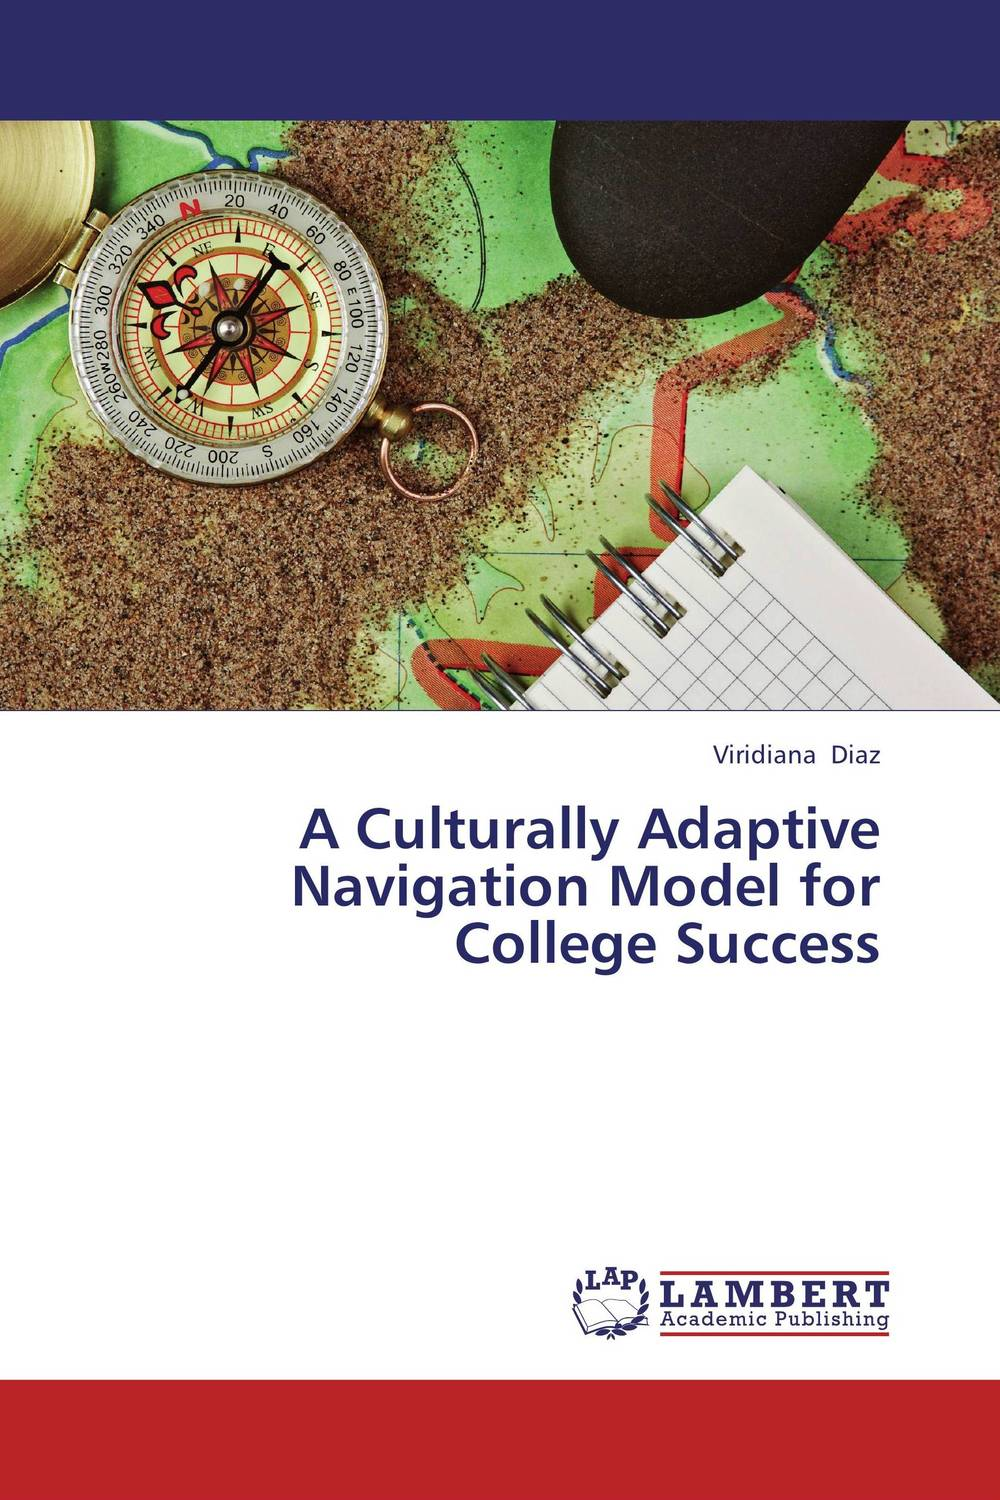 A Culturally Adaptive Navigation Model for College Success environmental literacy of undergraduate college students